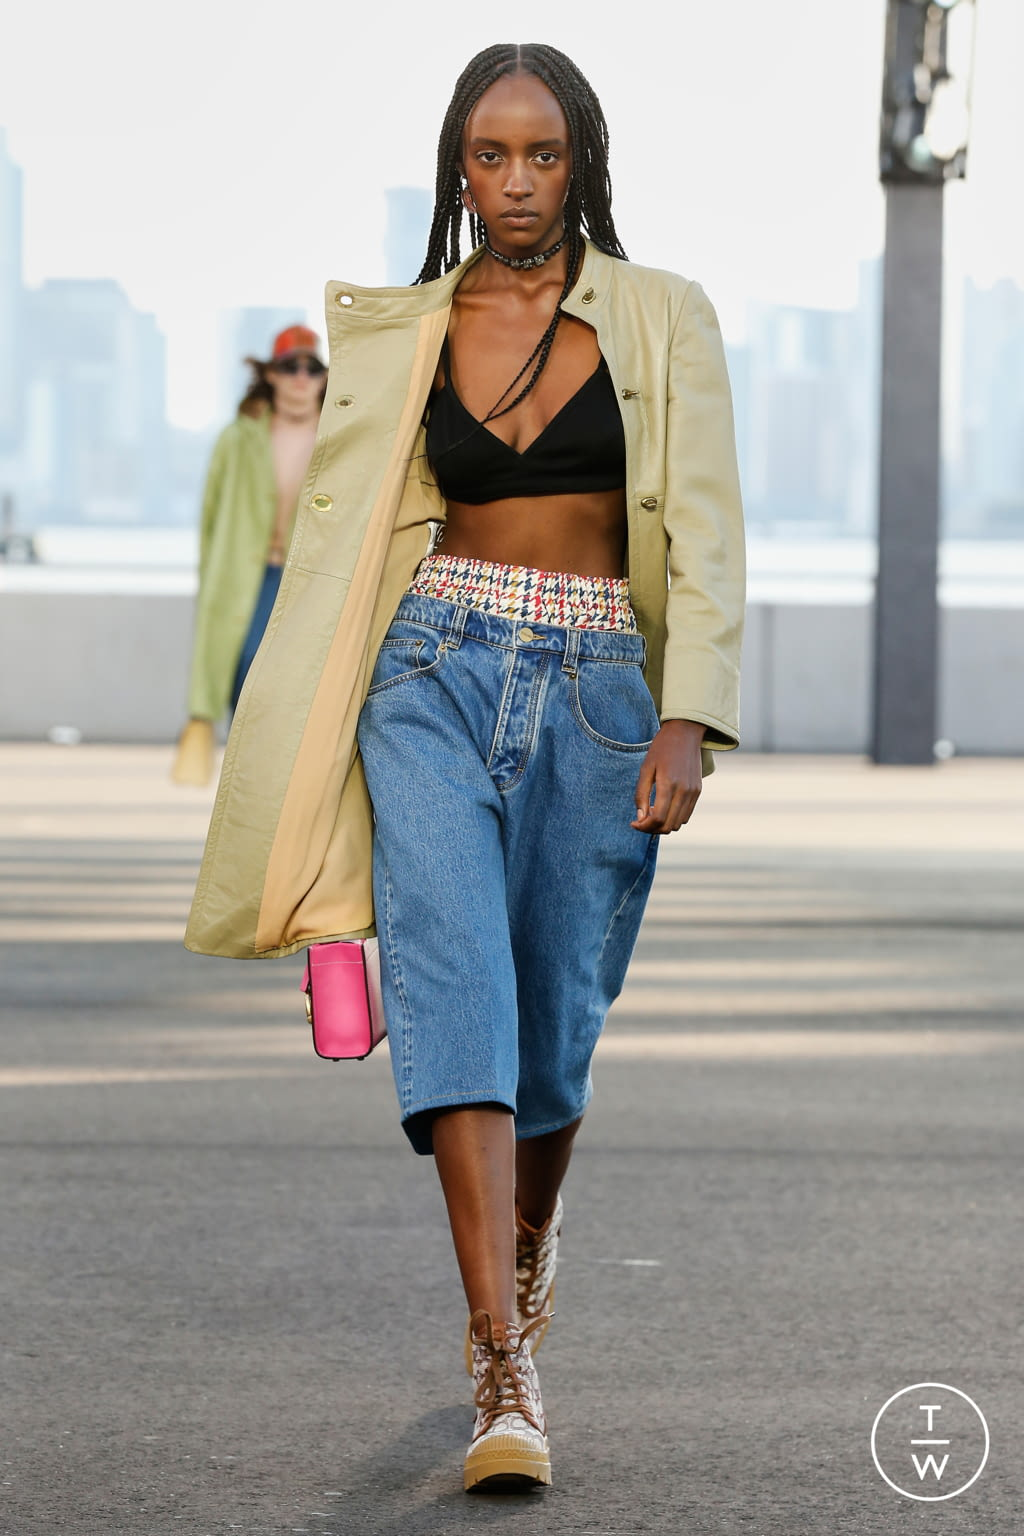 Fashion Week New York Spring/Summer 2022 look 11 from the Coach 1941 collection womenswear